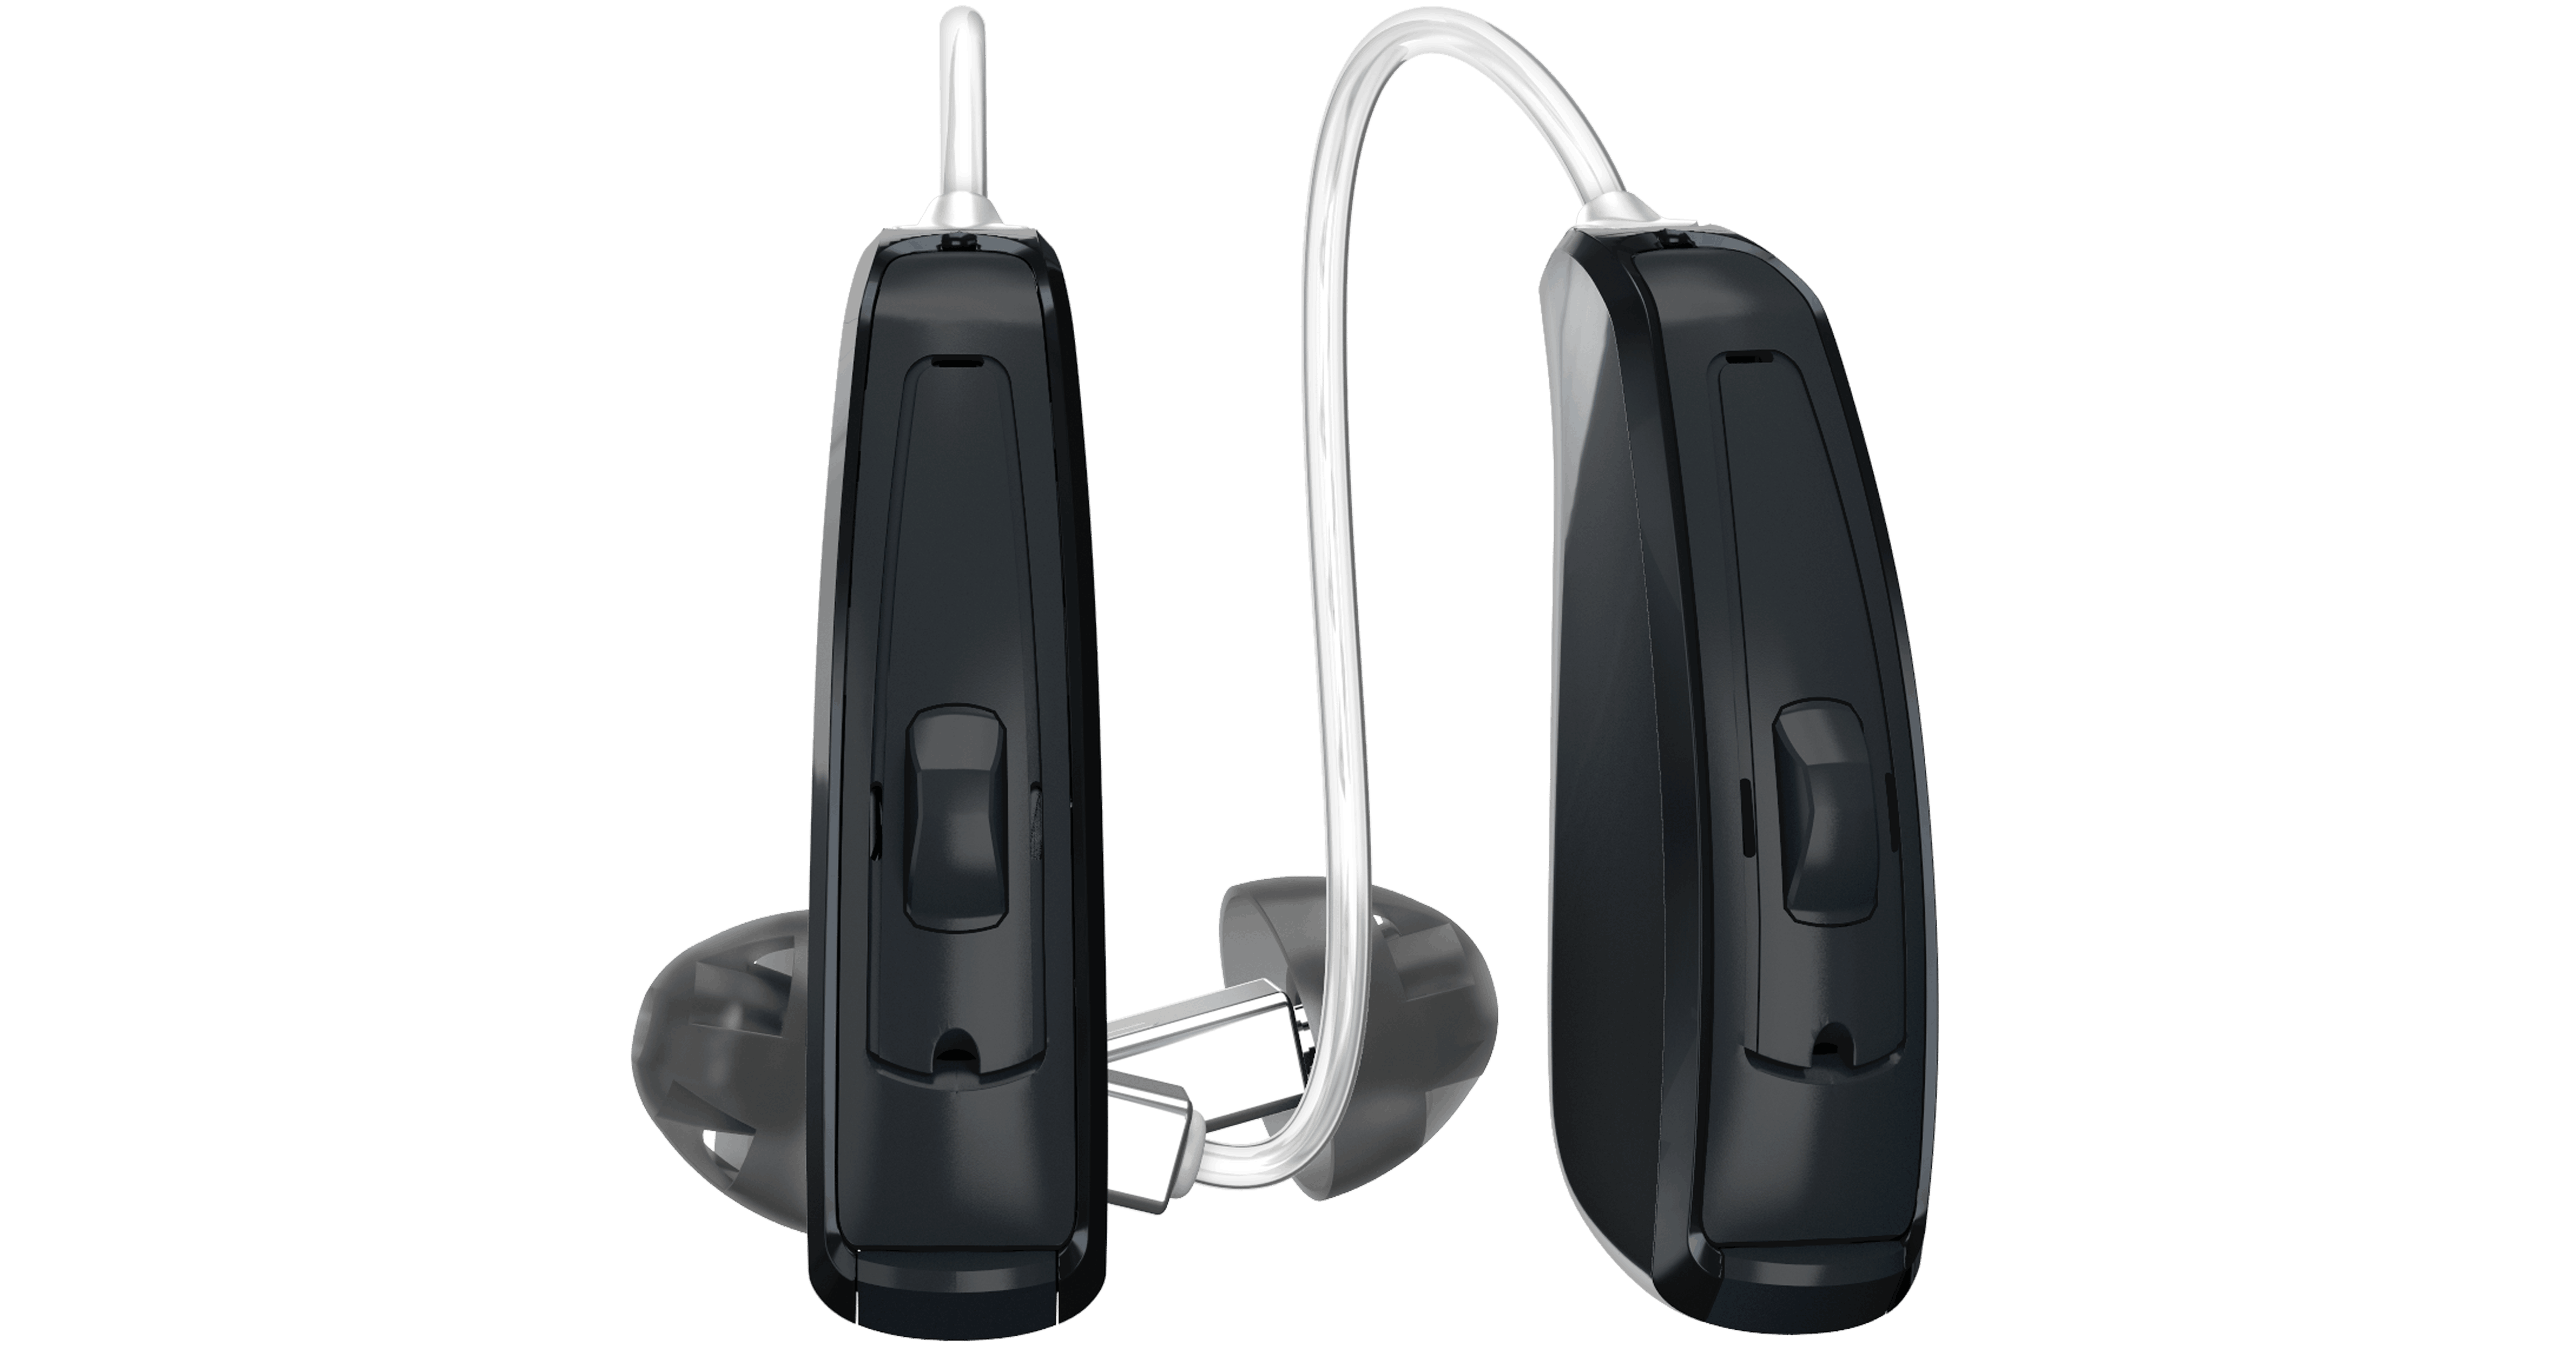 Pair of ReSound LiNX 3D hearing aids.